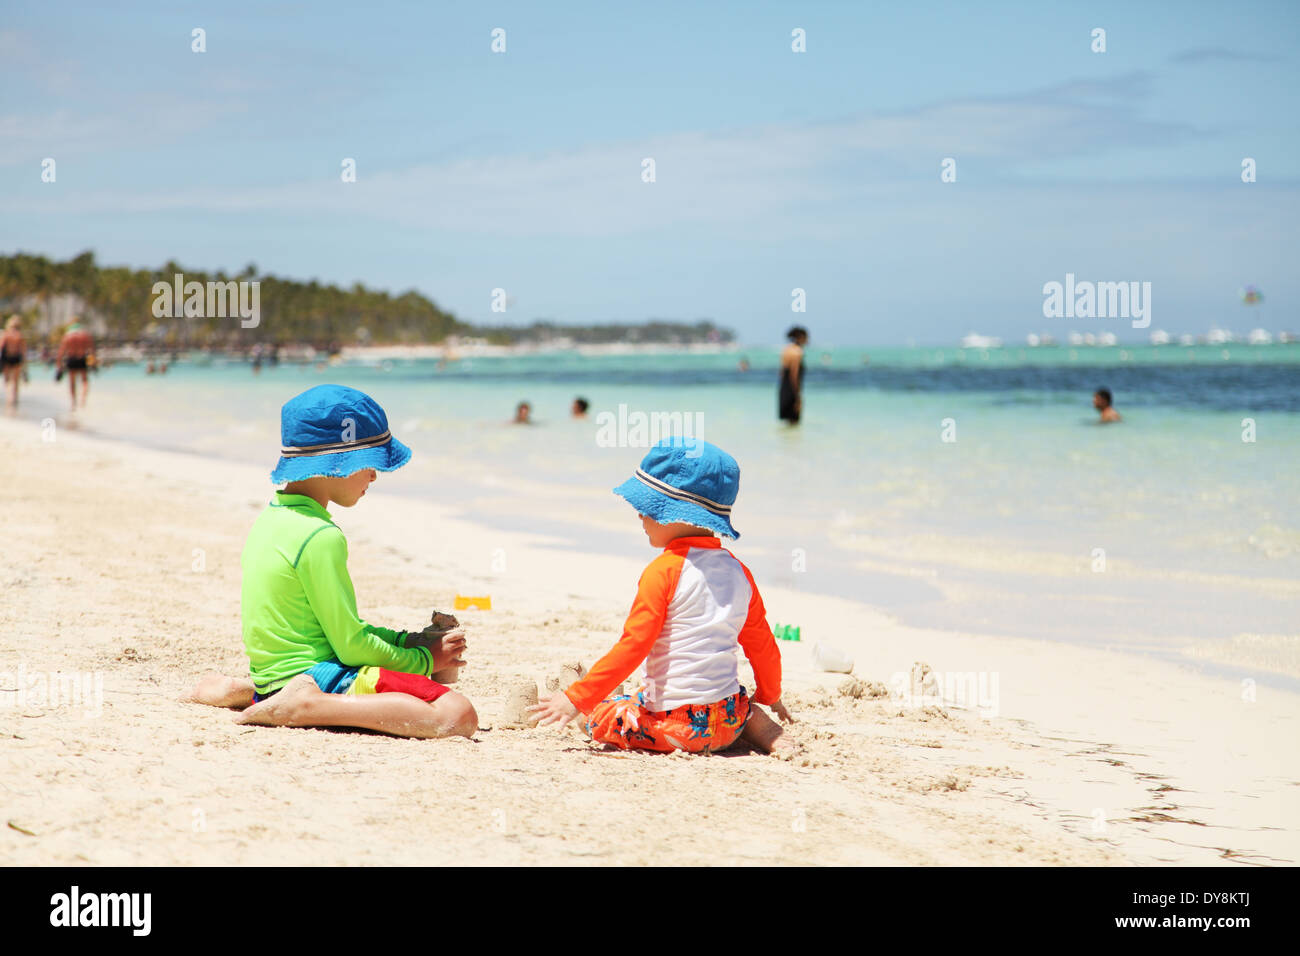 Two caucasian boys playing with sand at tropical beach - Stock Image